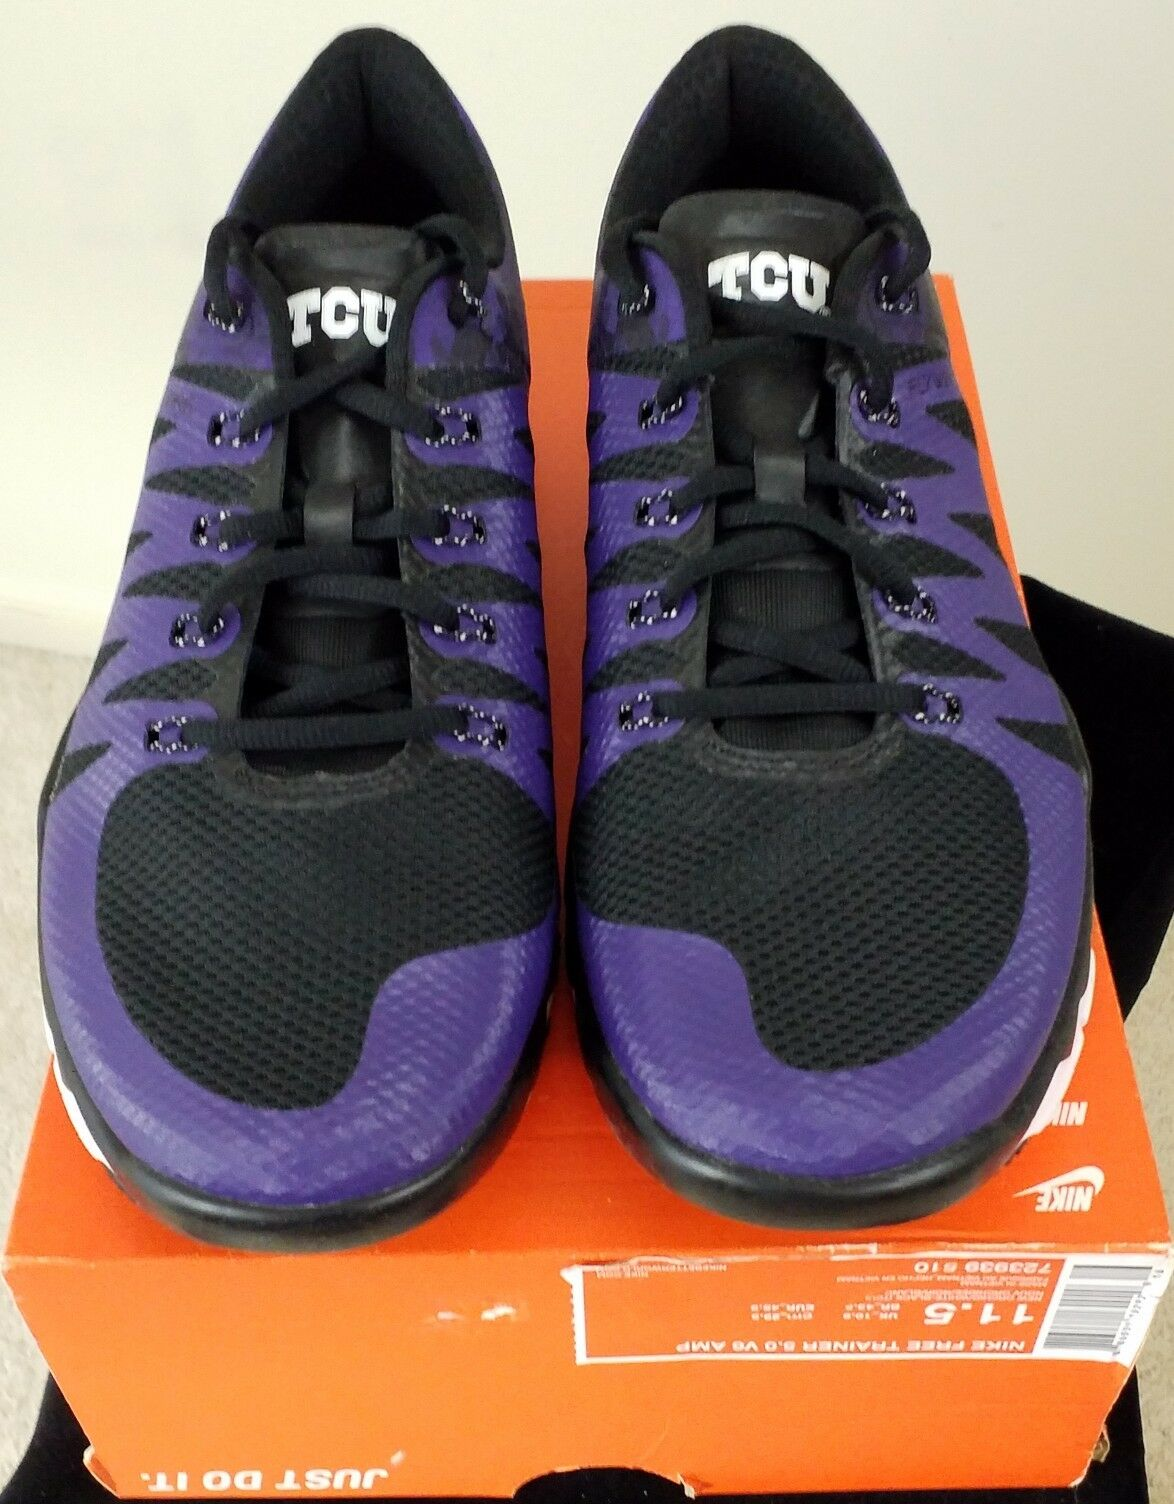 Nike Free Trainer 5.0 V6 AMP (TCU) HORNED FROGS TEXAS Size 11.5 Men's shoes NIB